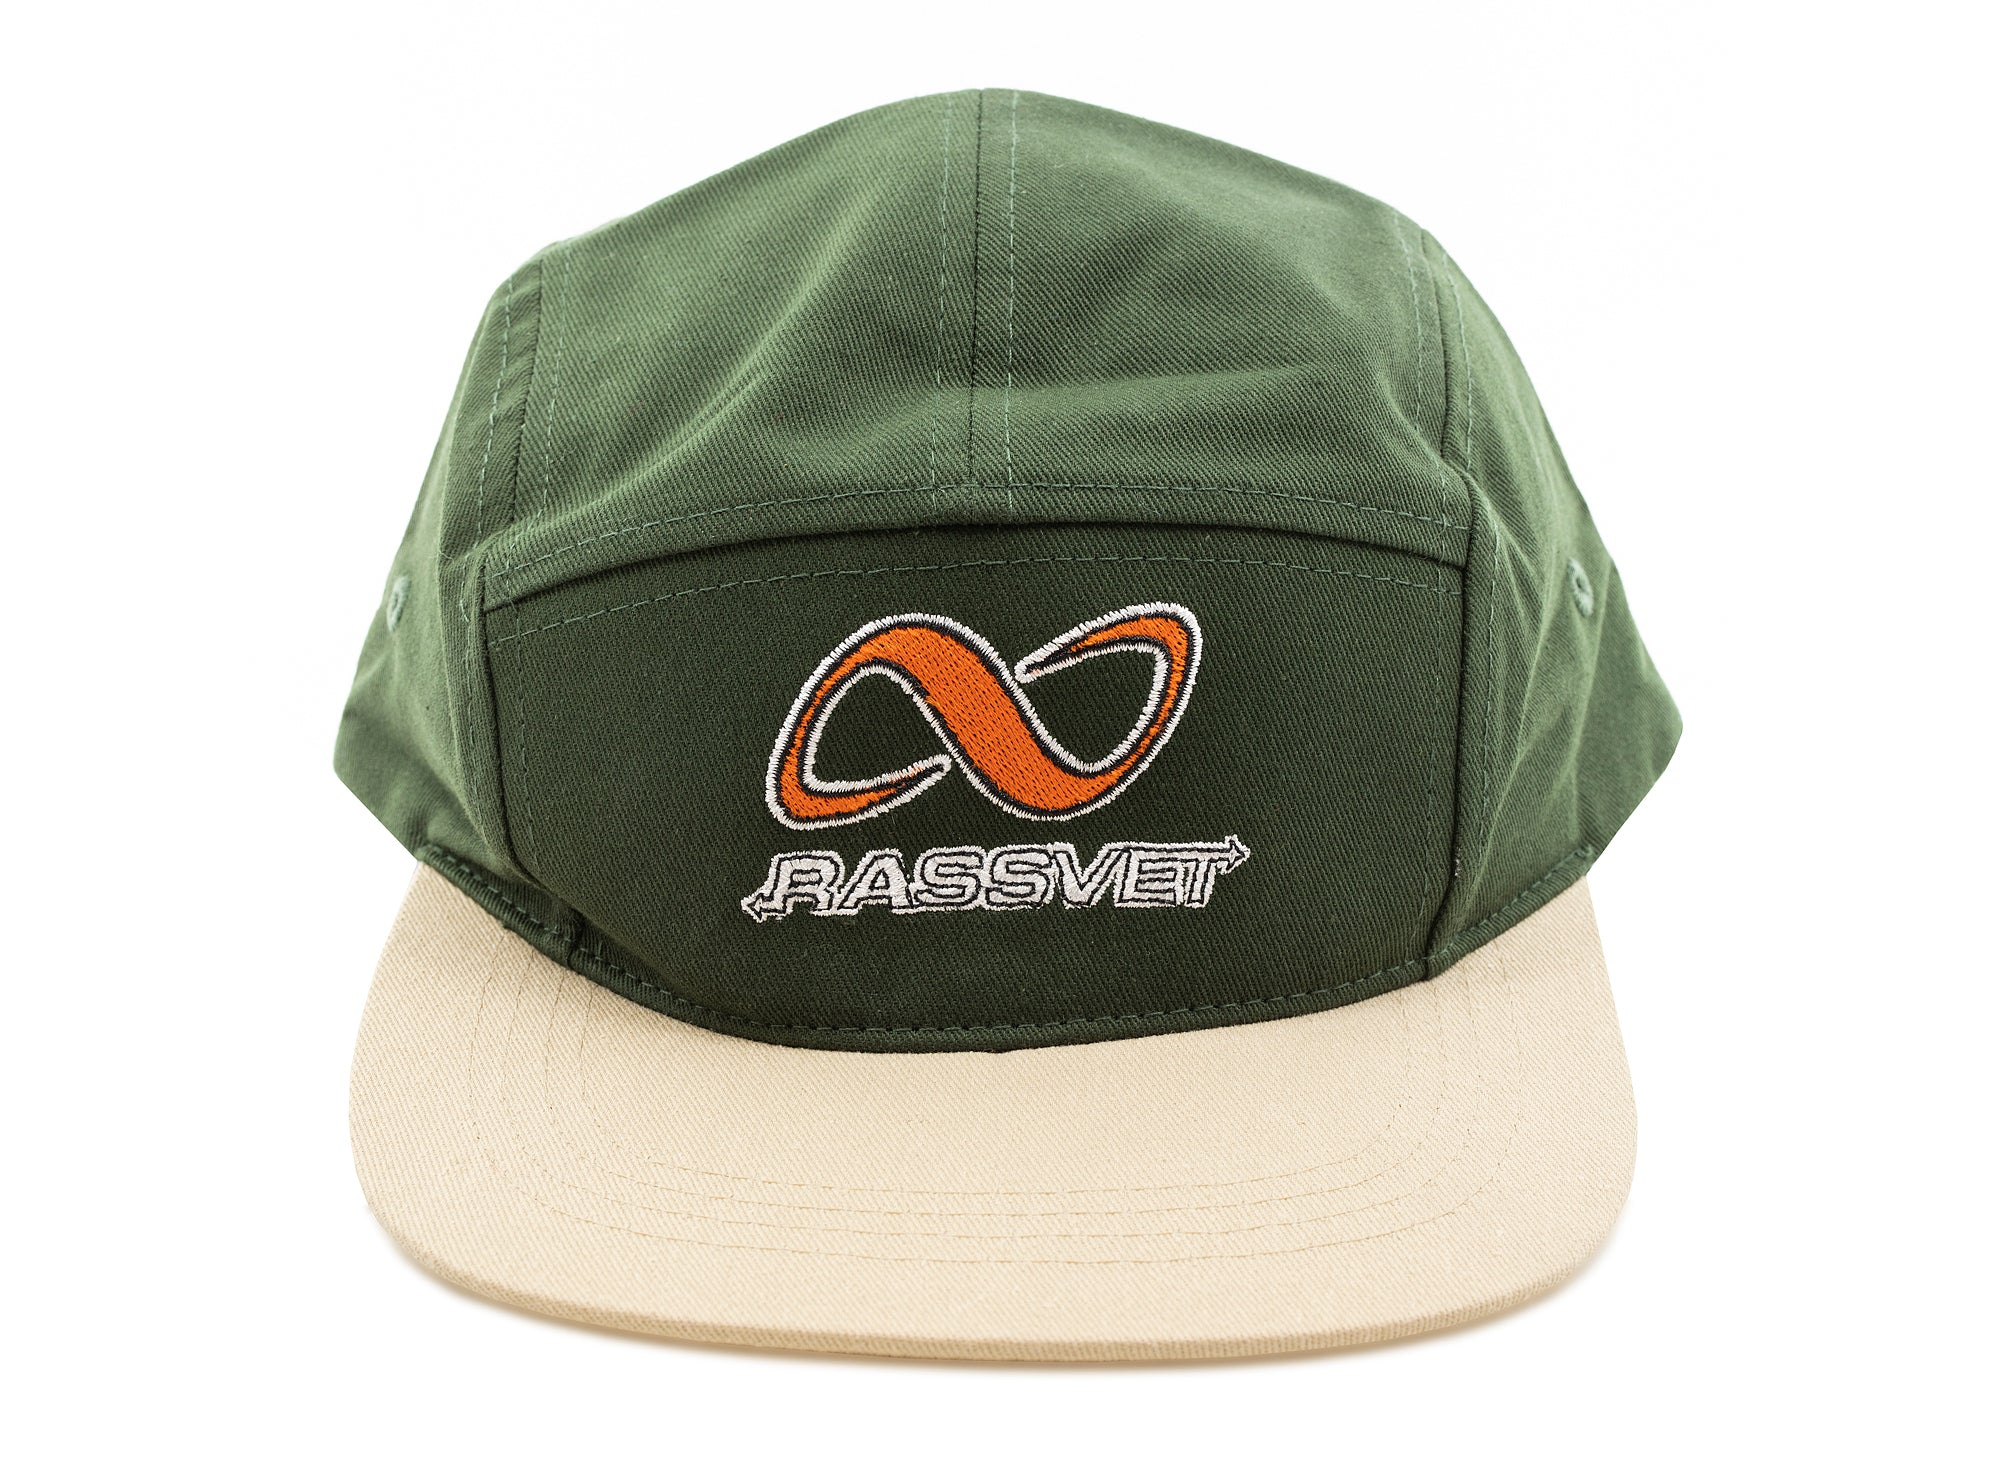 Rassvet (PACCBET) Embroidered Infinity Cap in Dark Green